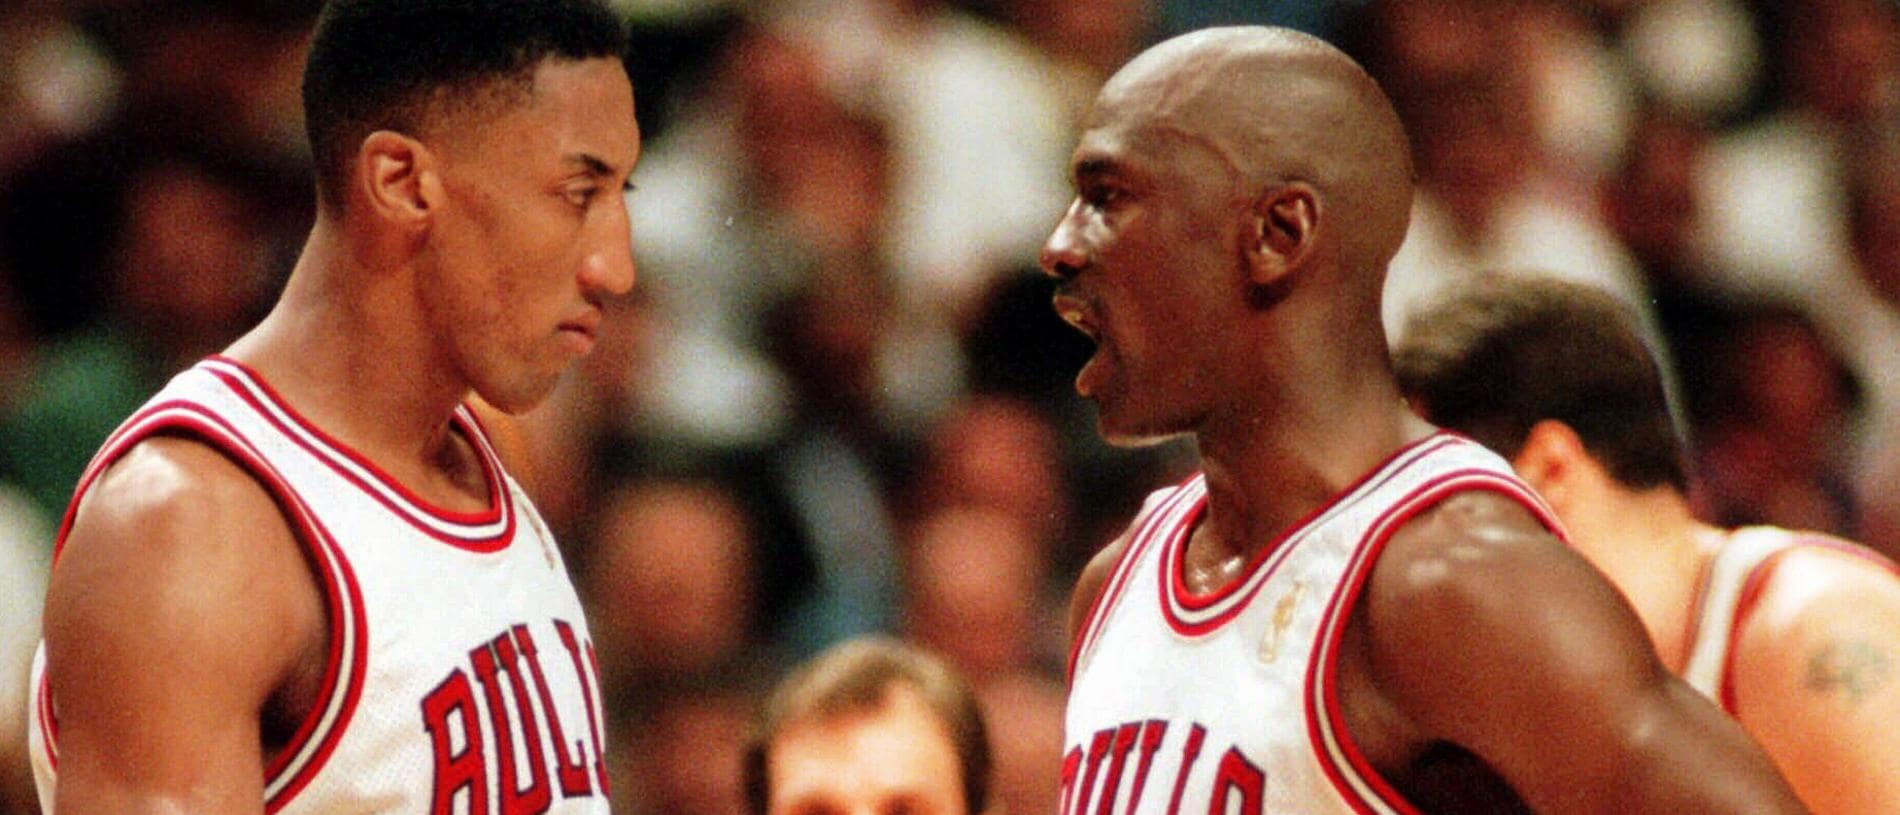 Basketballer Michael Jordan (r) talking with Scottie Pippen.  USA basketball - Atlanta Hawks vs Chicago Bulls third quarter of play-off match in Chicago 06 May 1997.   /Basketball/Overseas